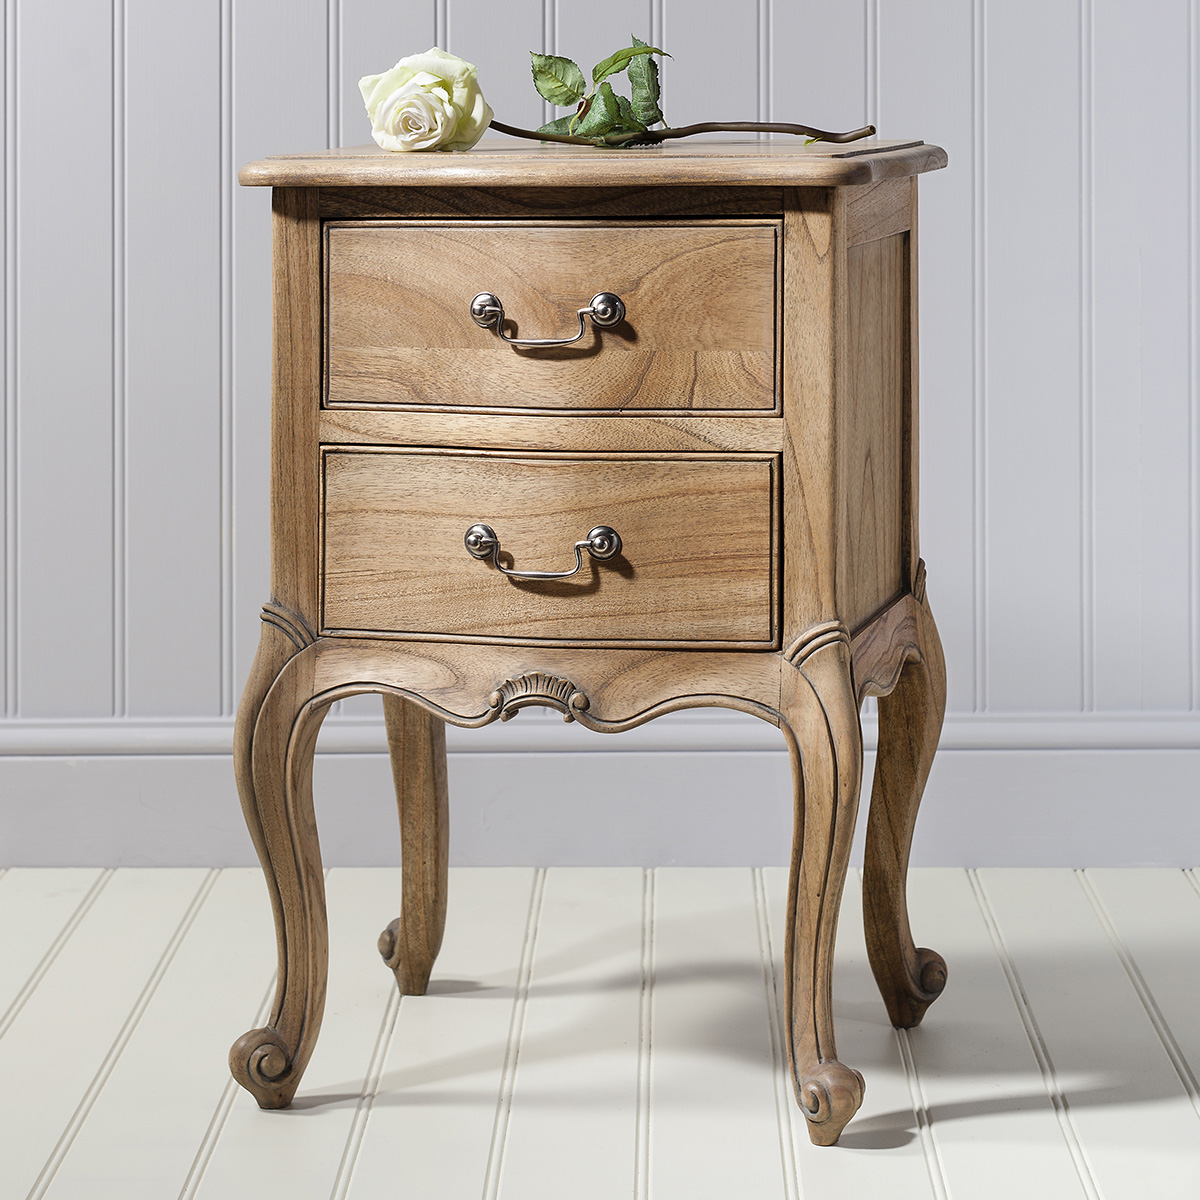 Madeleine bedside drawers in Weathered Ash at FADS.co.uk